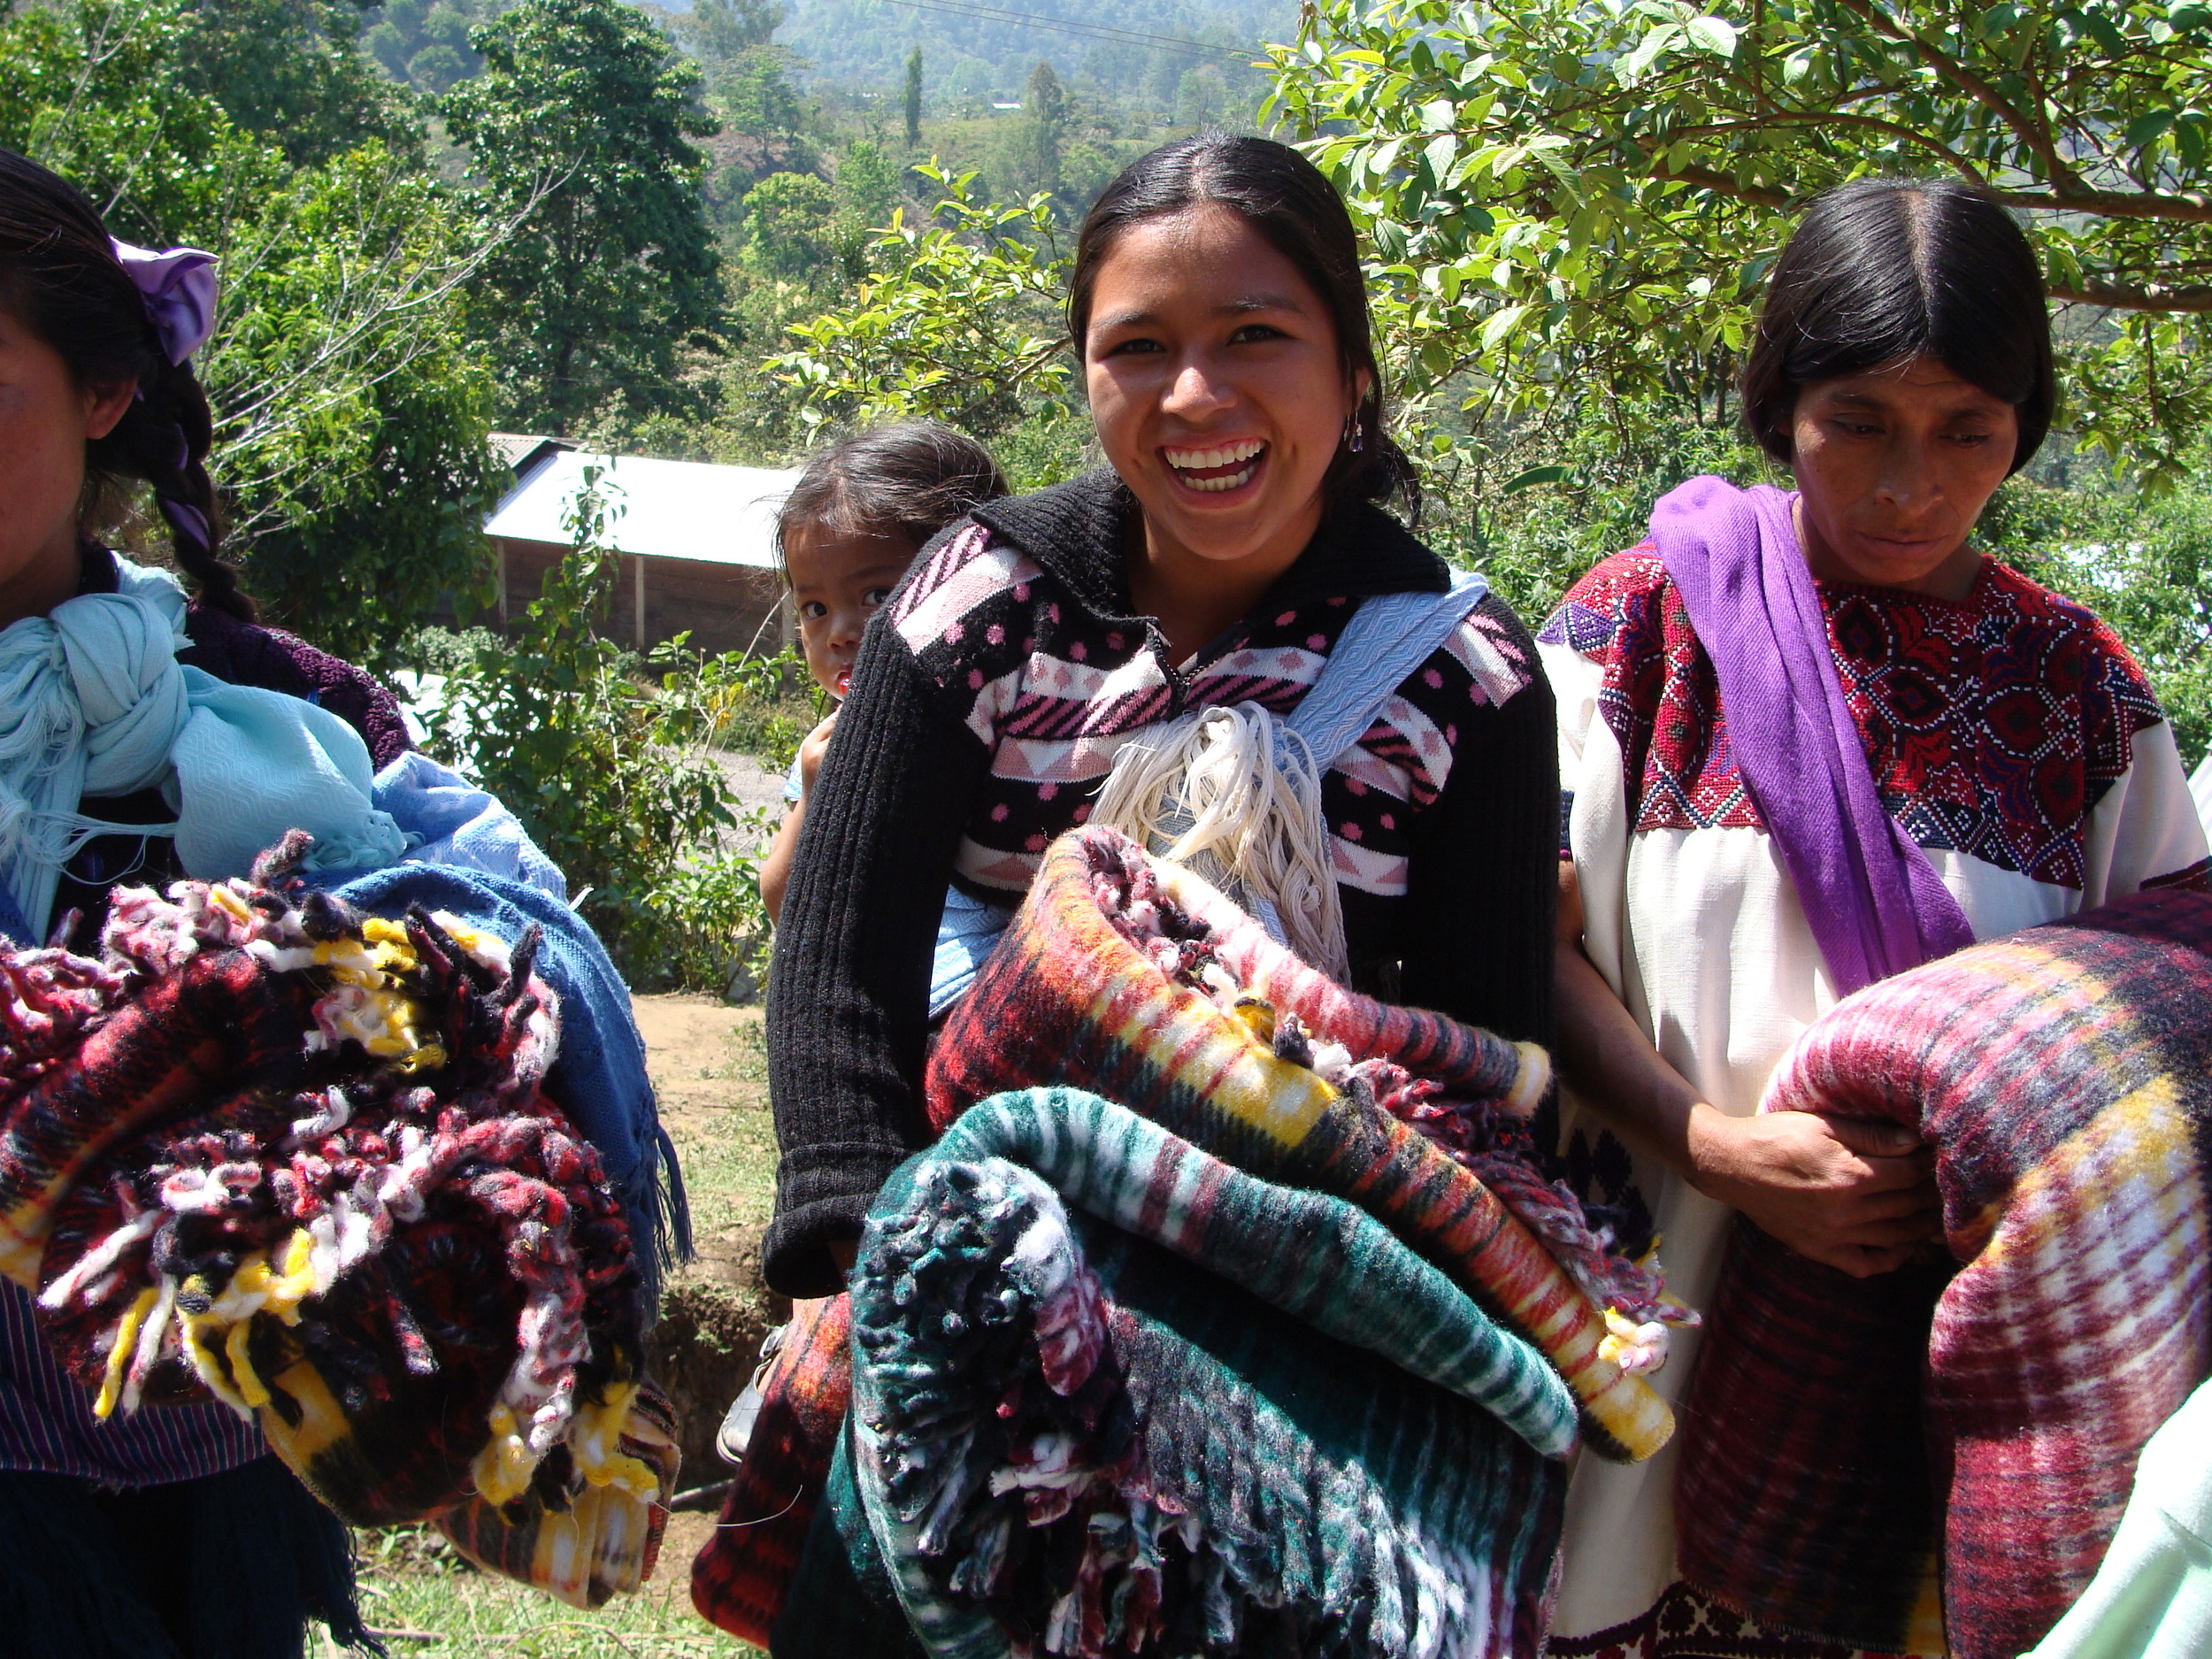 Women from the Chamula tribe with blankets gifted to them by supporters of Mexico Ministries.